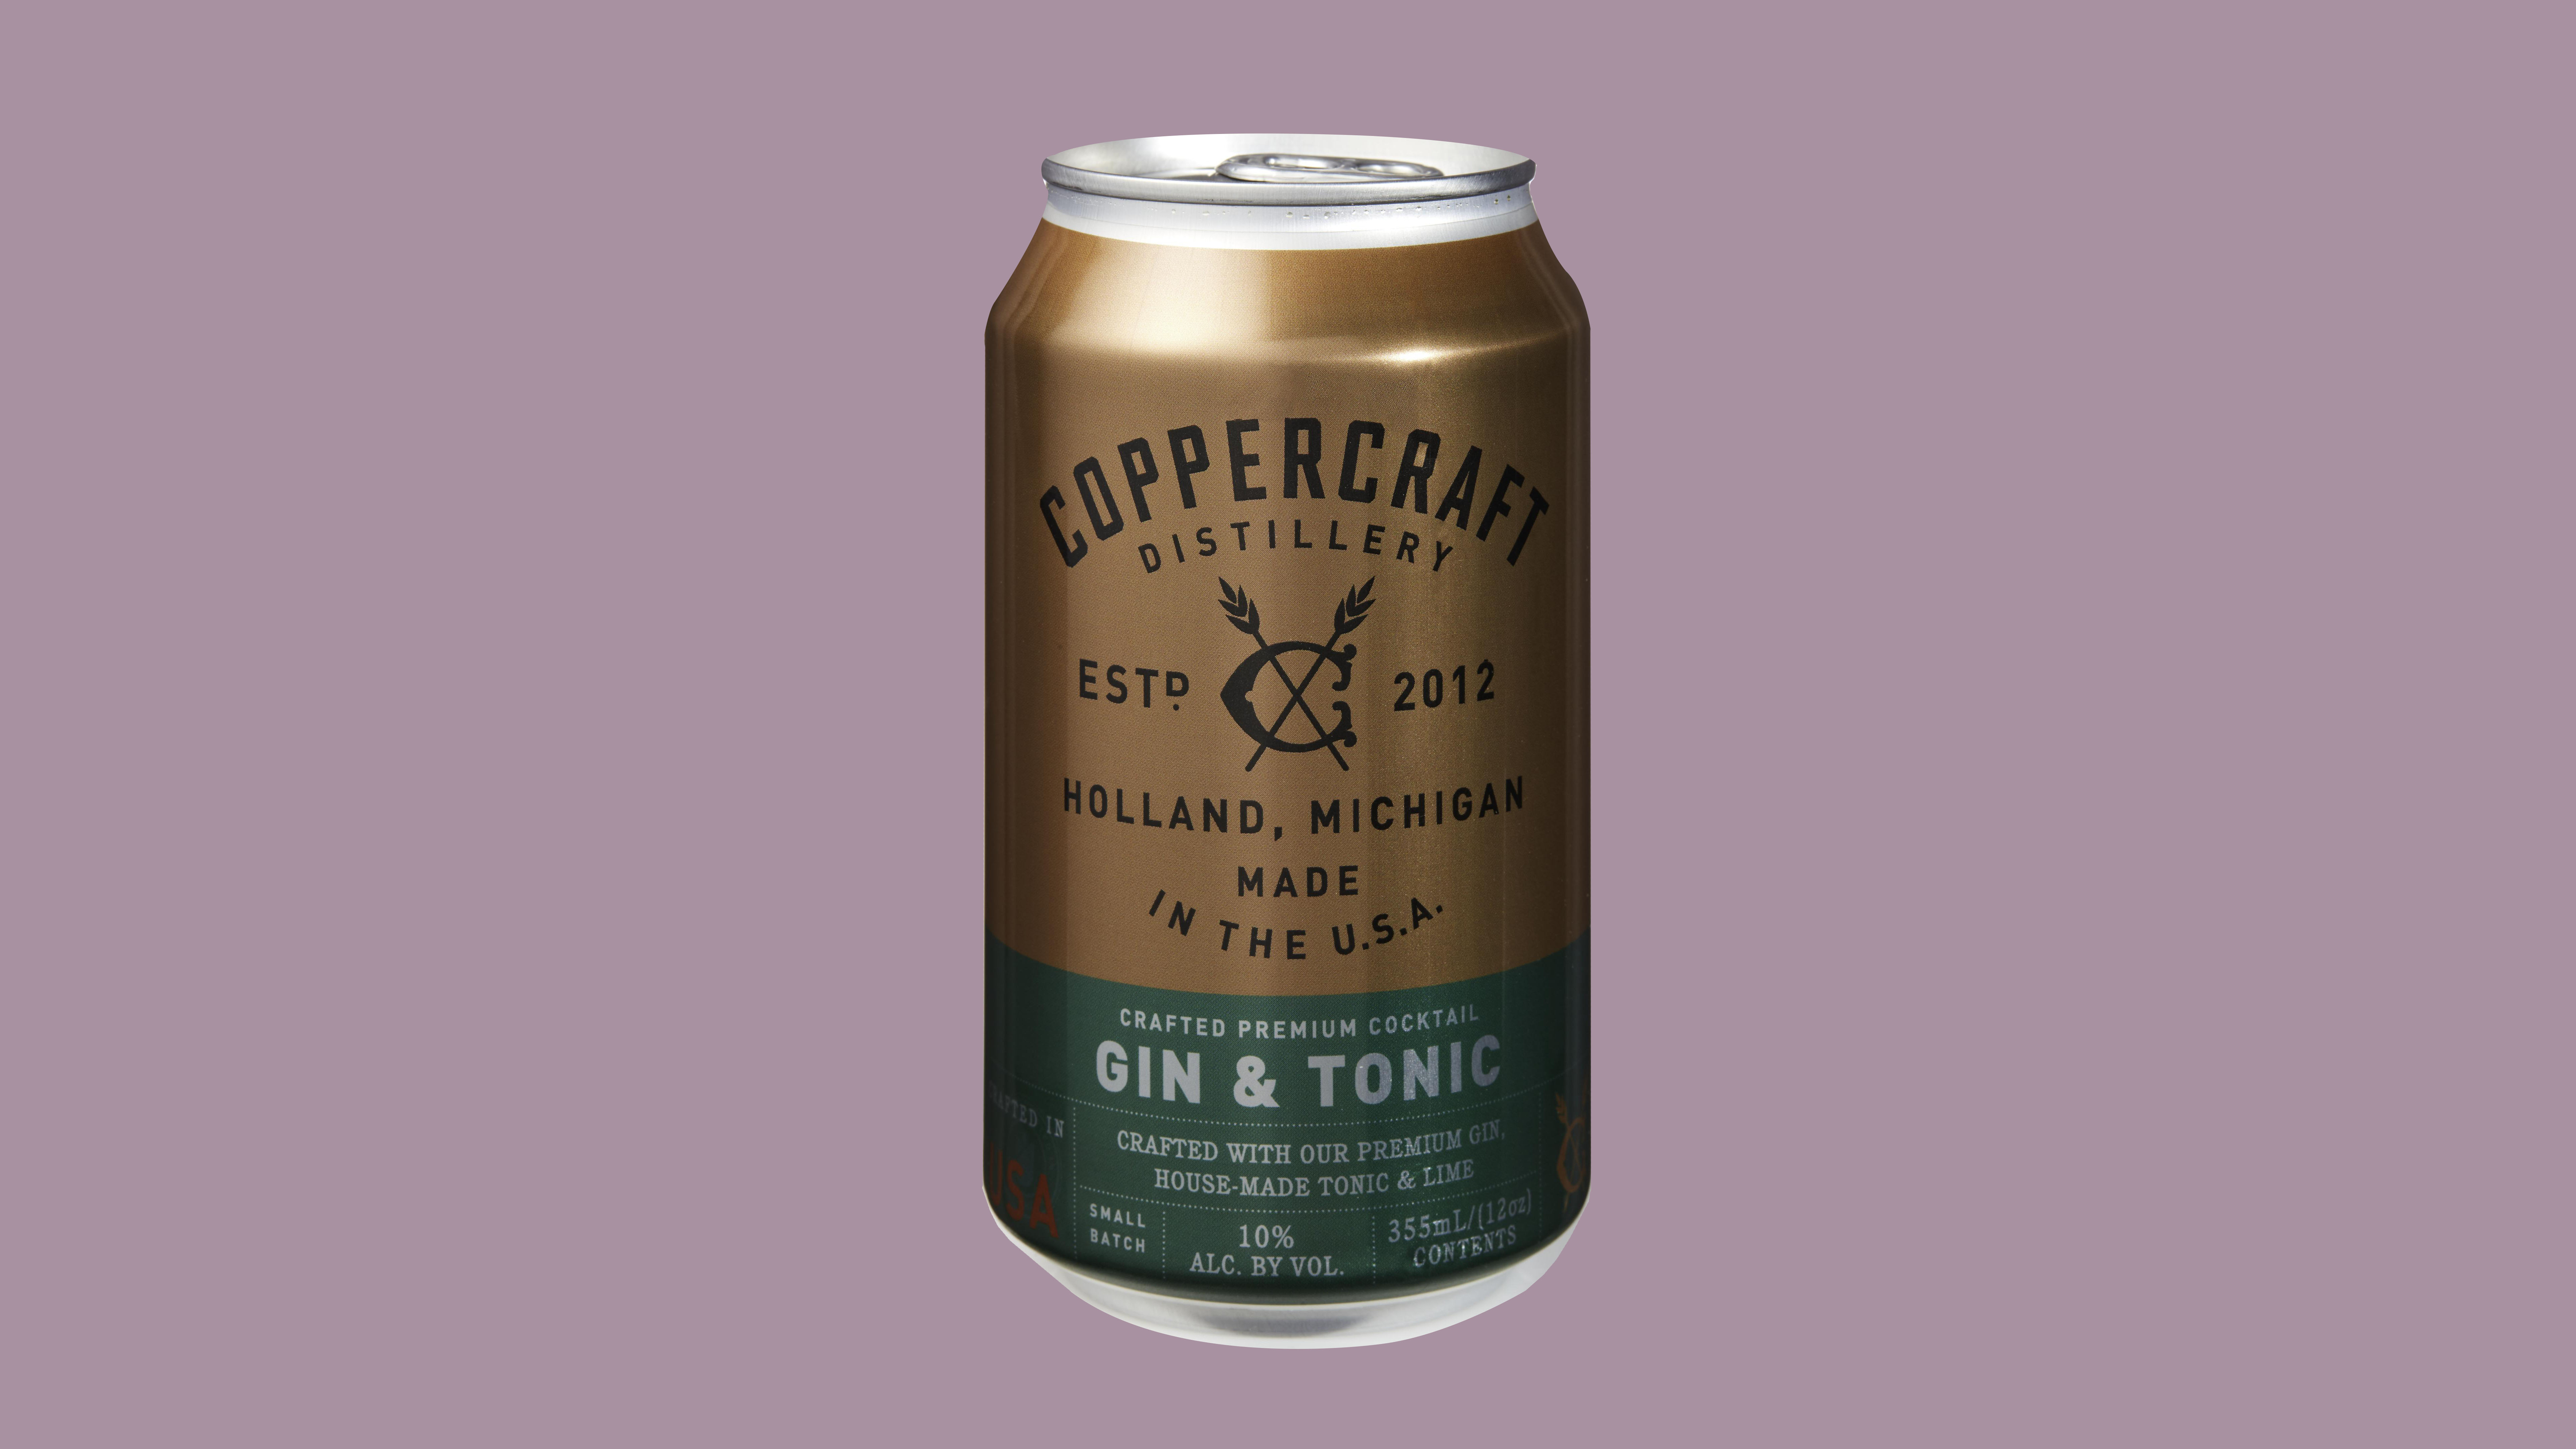 gin and tonic canned cocktail